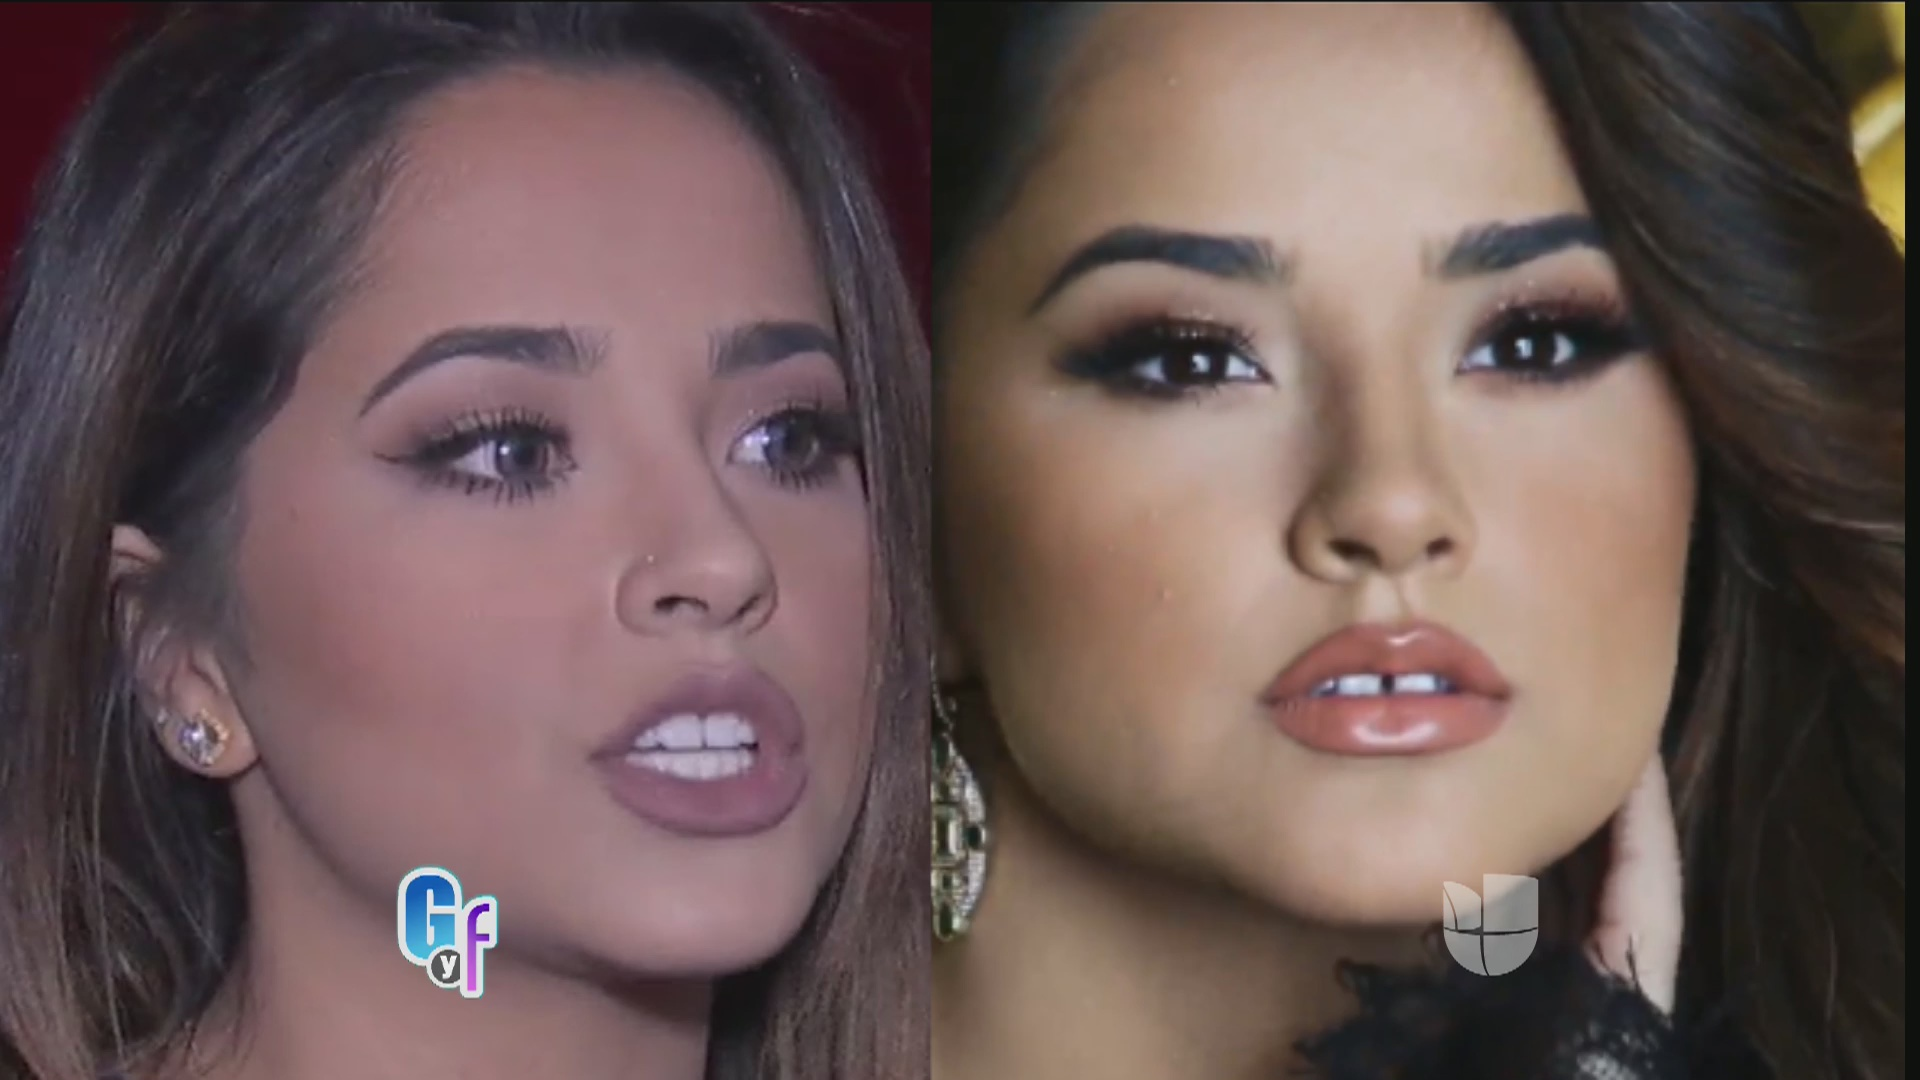 Alison Wonderland Ocean Drive Remix also Becky G Se Hizo Un Gran Cambio Tiene Una Dentadura Nueva Video further Toys R Us To Carry The Amazon Kindle In Usa Based Stores further Red Hot Conservative Chicks Fox News 27 furthermore Afstandsbediening Voor Alle Tv Ontvangers Van Interactieve Tv. on chicago radio